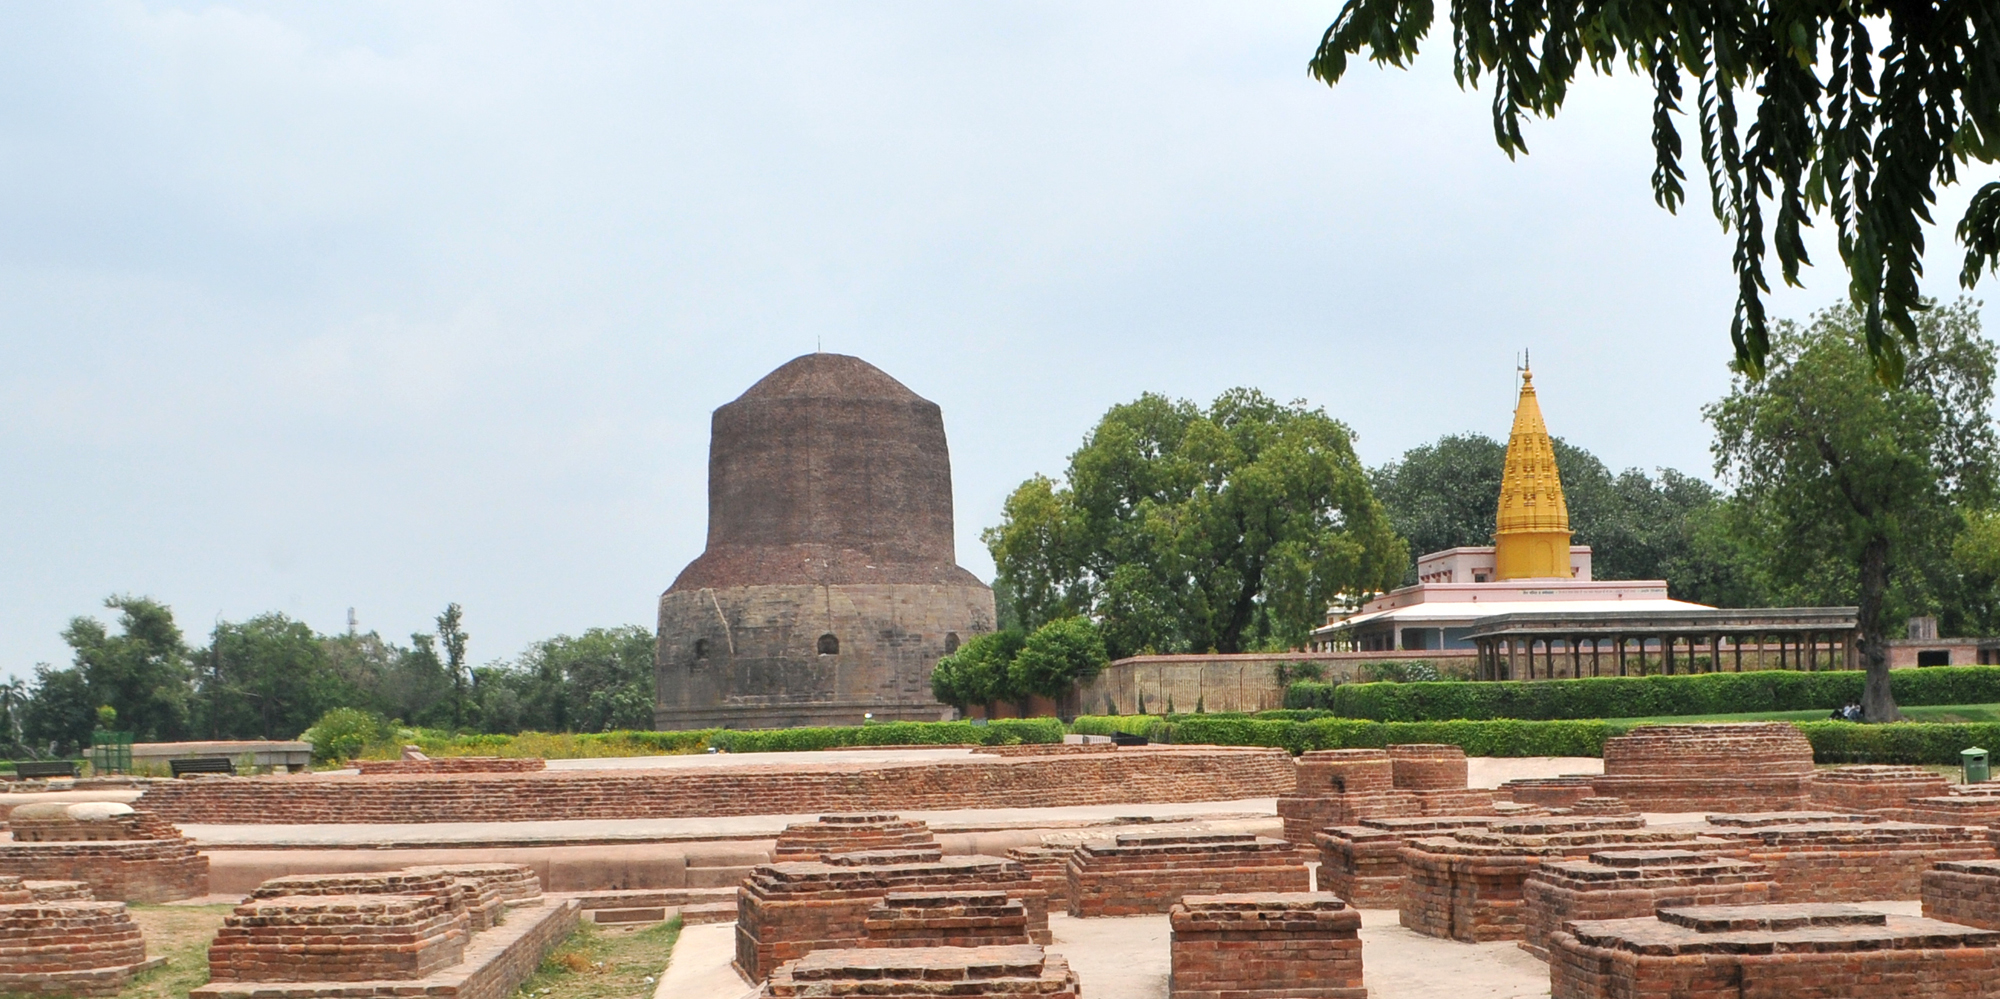 <strong>Sarnath - 1</strong> - Dhamek Stupa is a massive stupa located at Sarnath, 13 km away from Varanasi in the state of Uttar Pradesh, India.